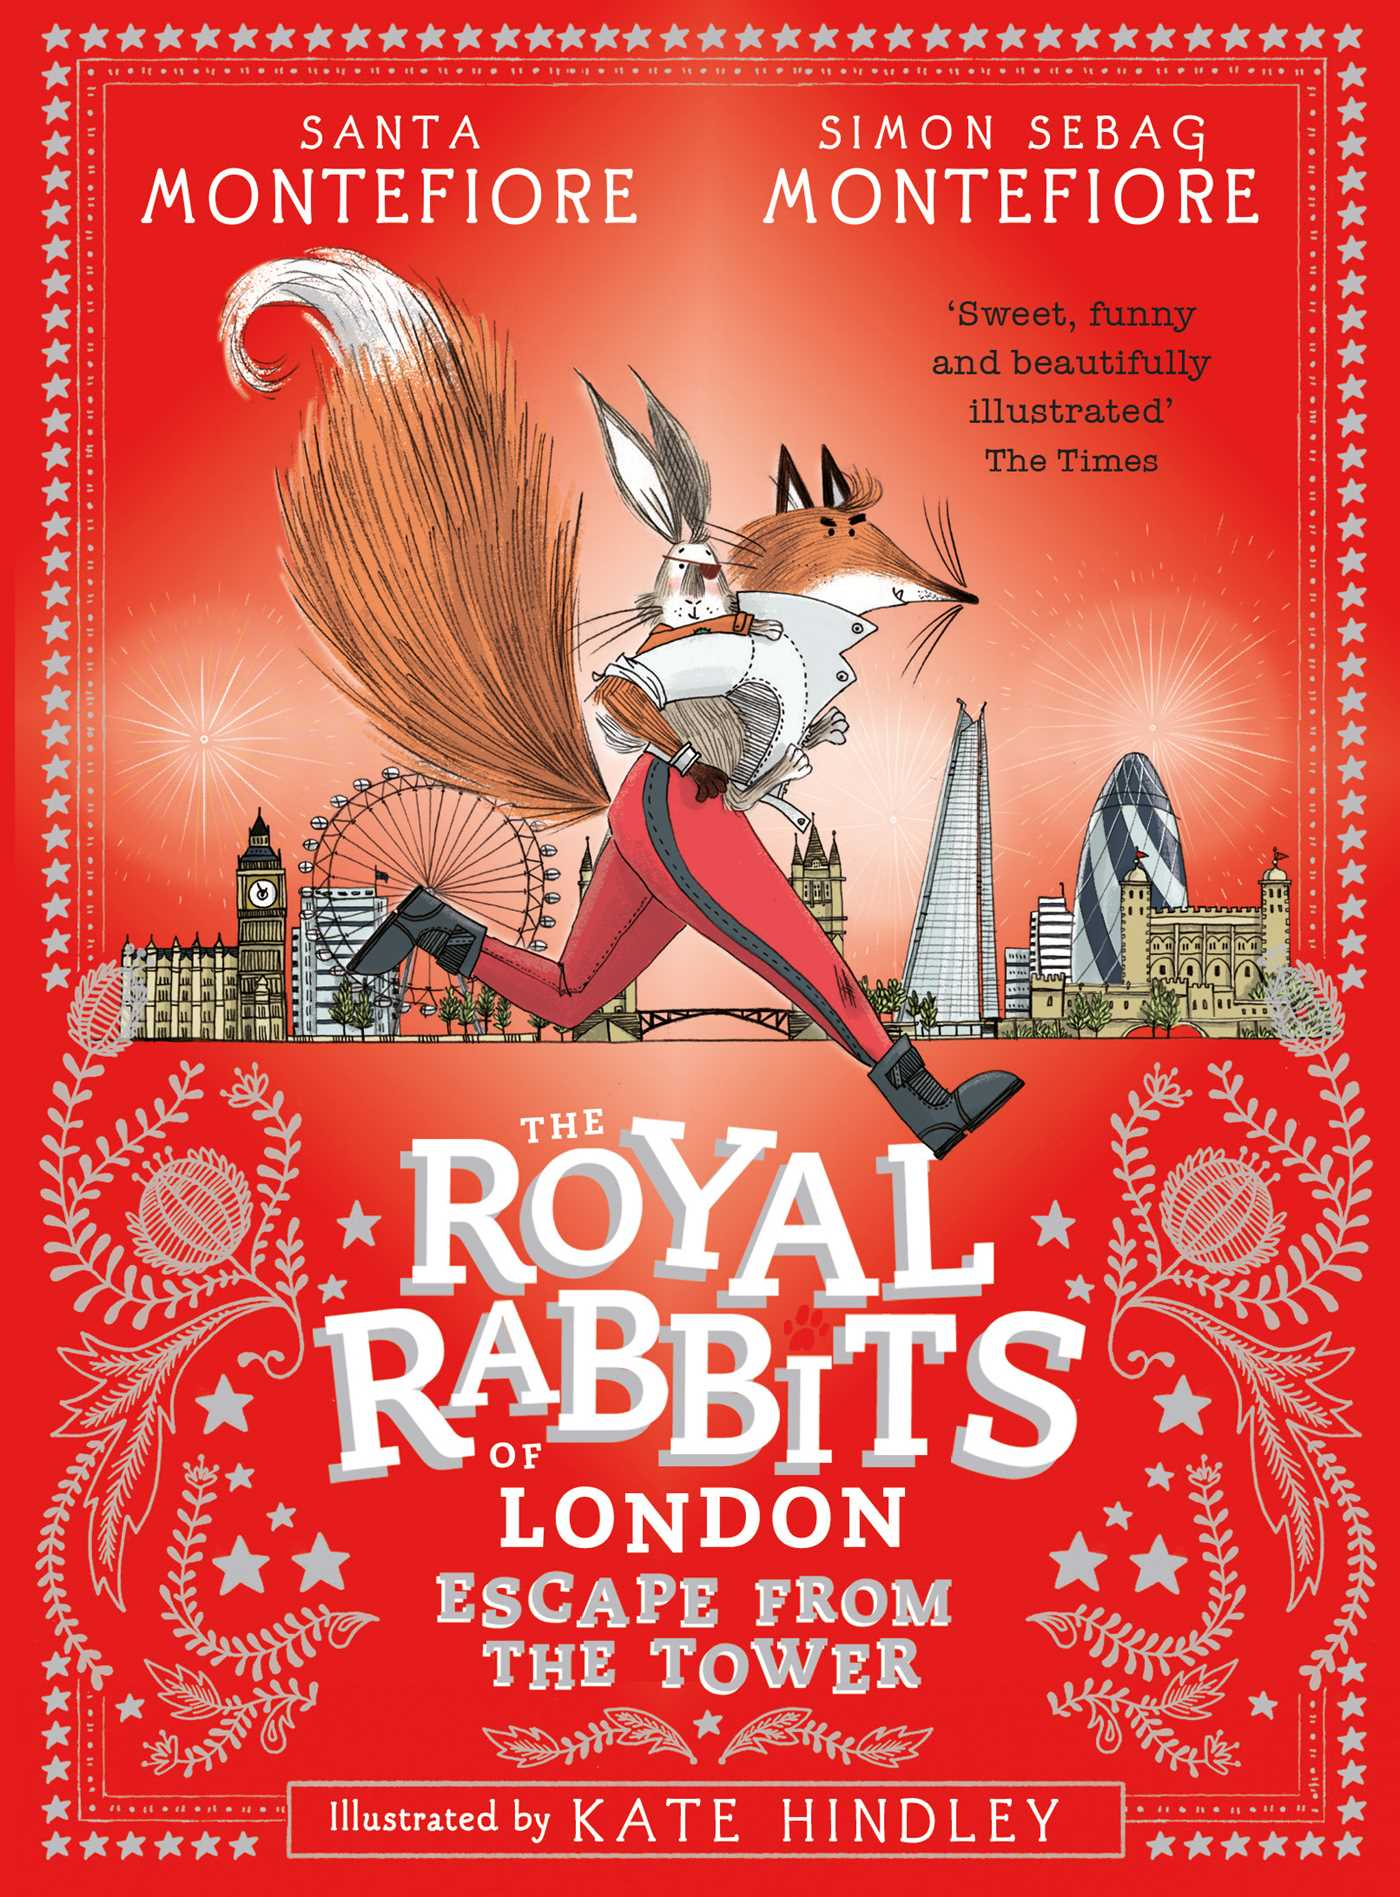 The royal rabbits of london escape from the tower 9781471157905 hr